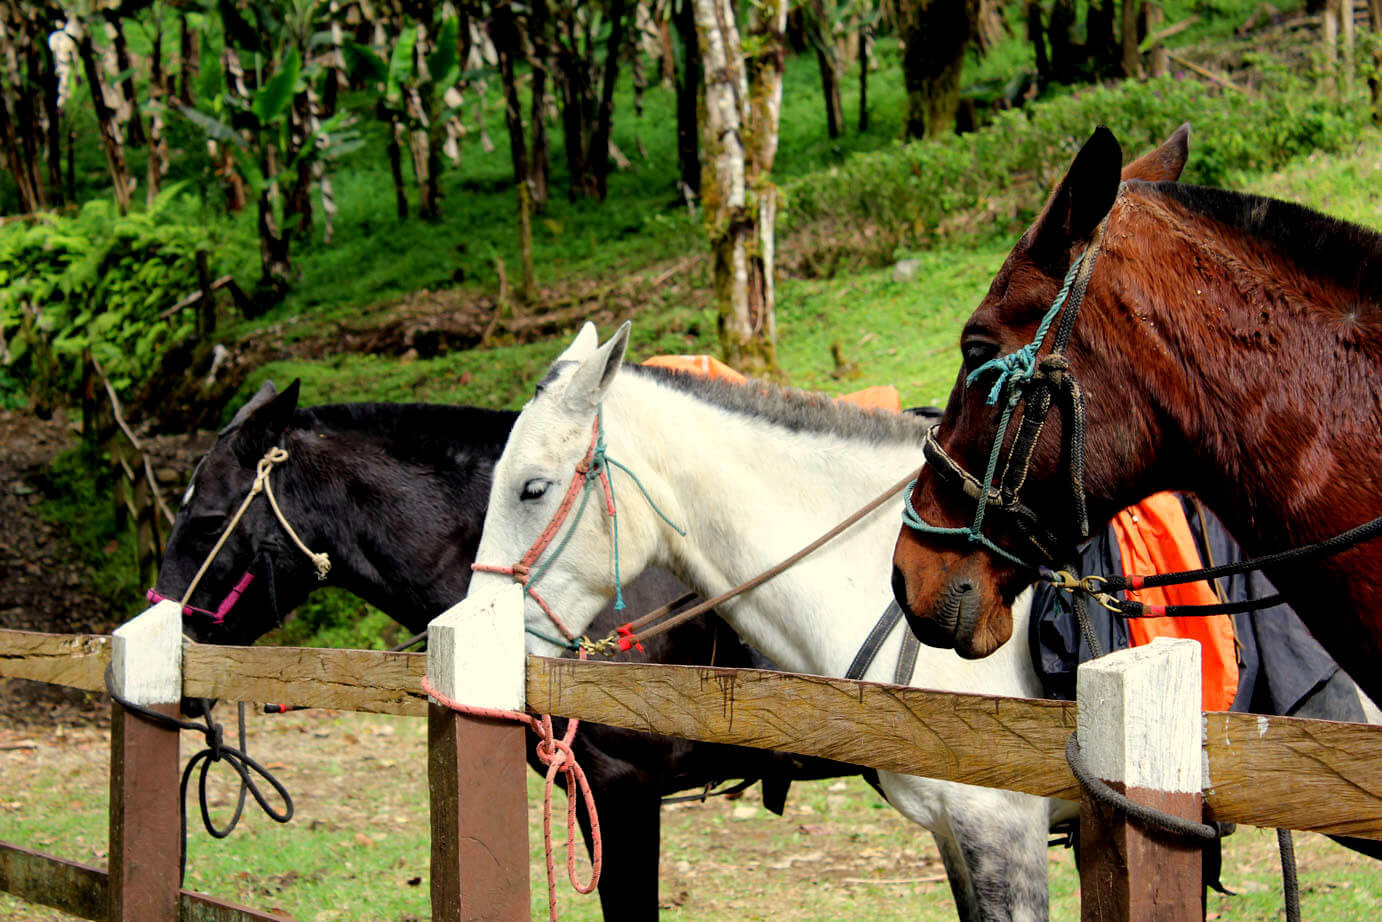 Monteverde Costa Rica guided Horseback riding tour horses tied up and waiting for guests